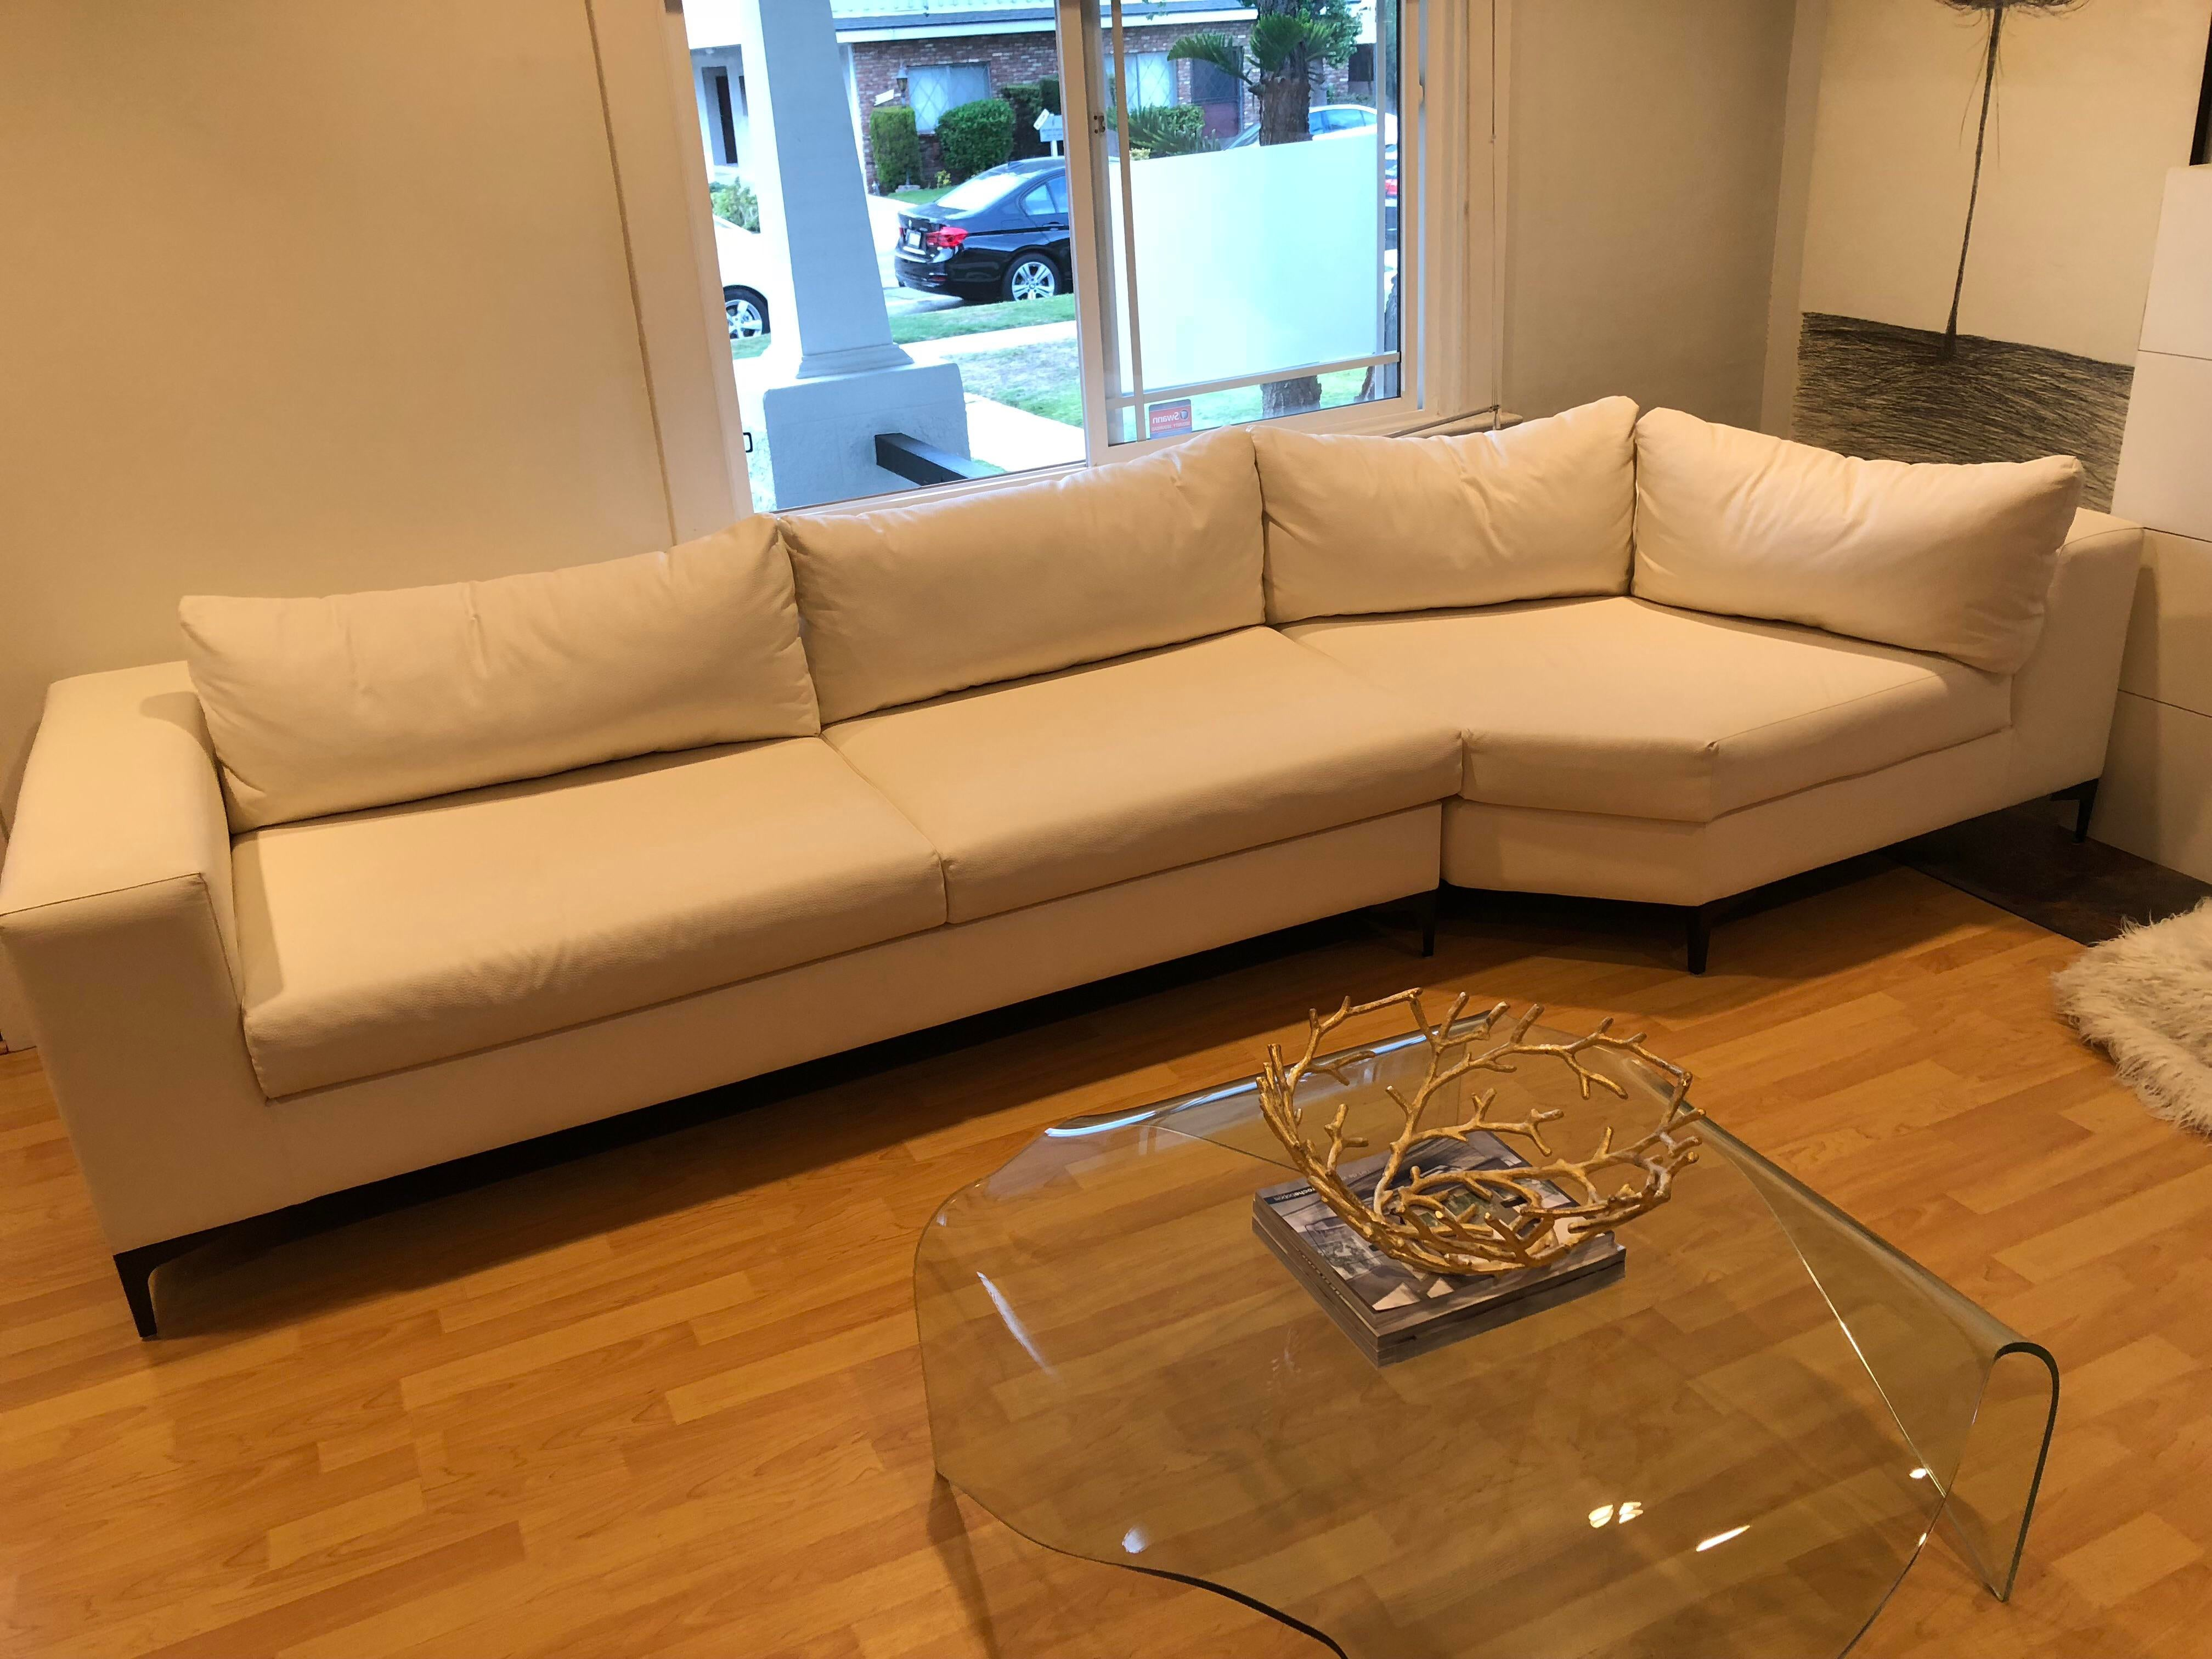 Ordinaire Animal Skin Extra Long White Leather Sofa For Sale   Image 7 Of 8